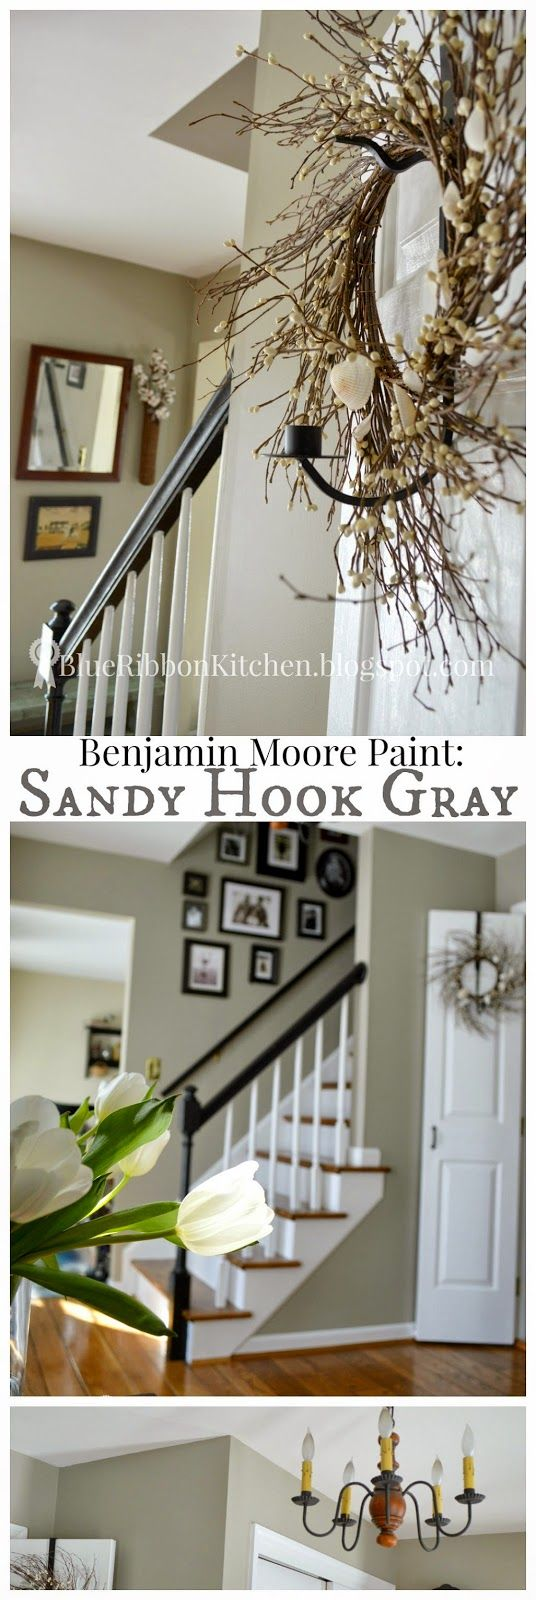 70 Best Entryway Ideas Images On Pinterest Grand